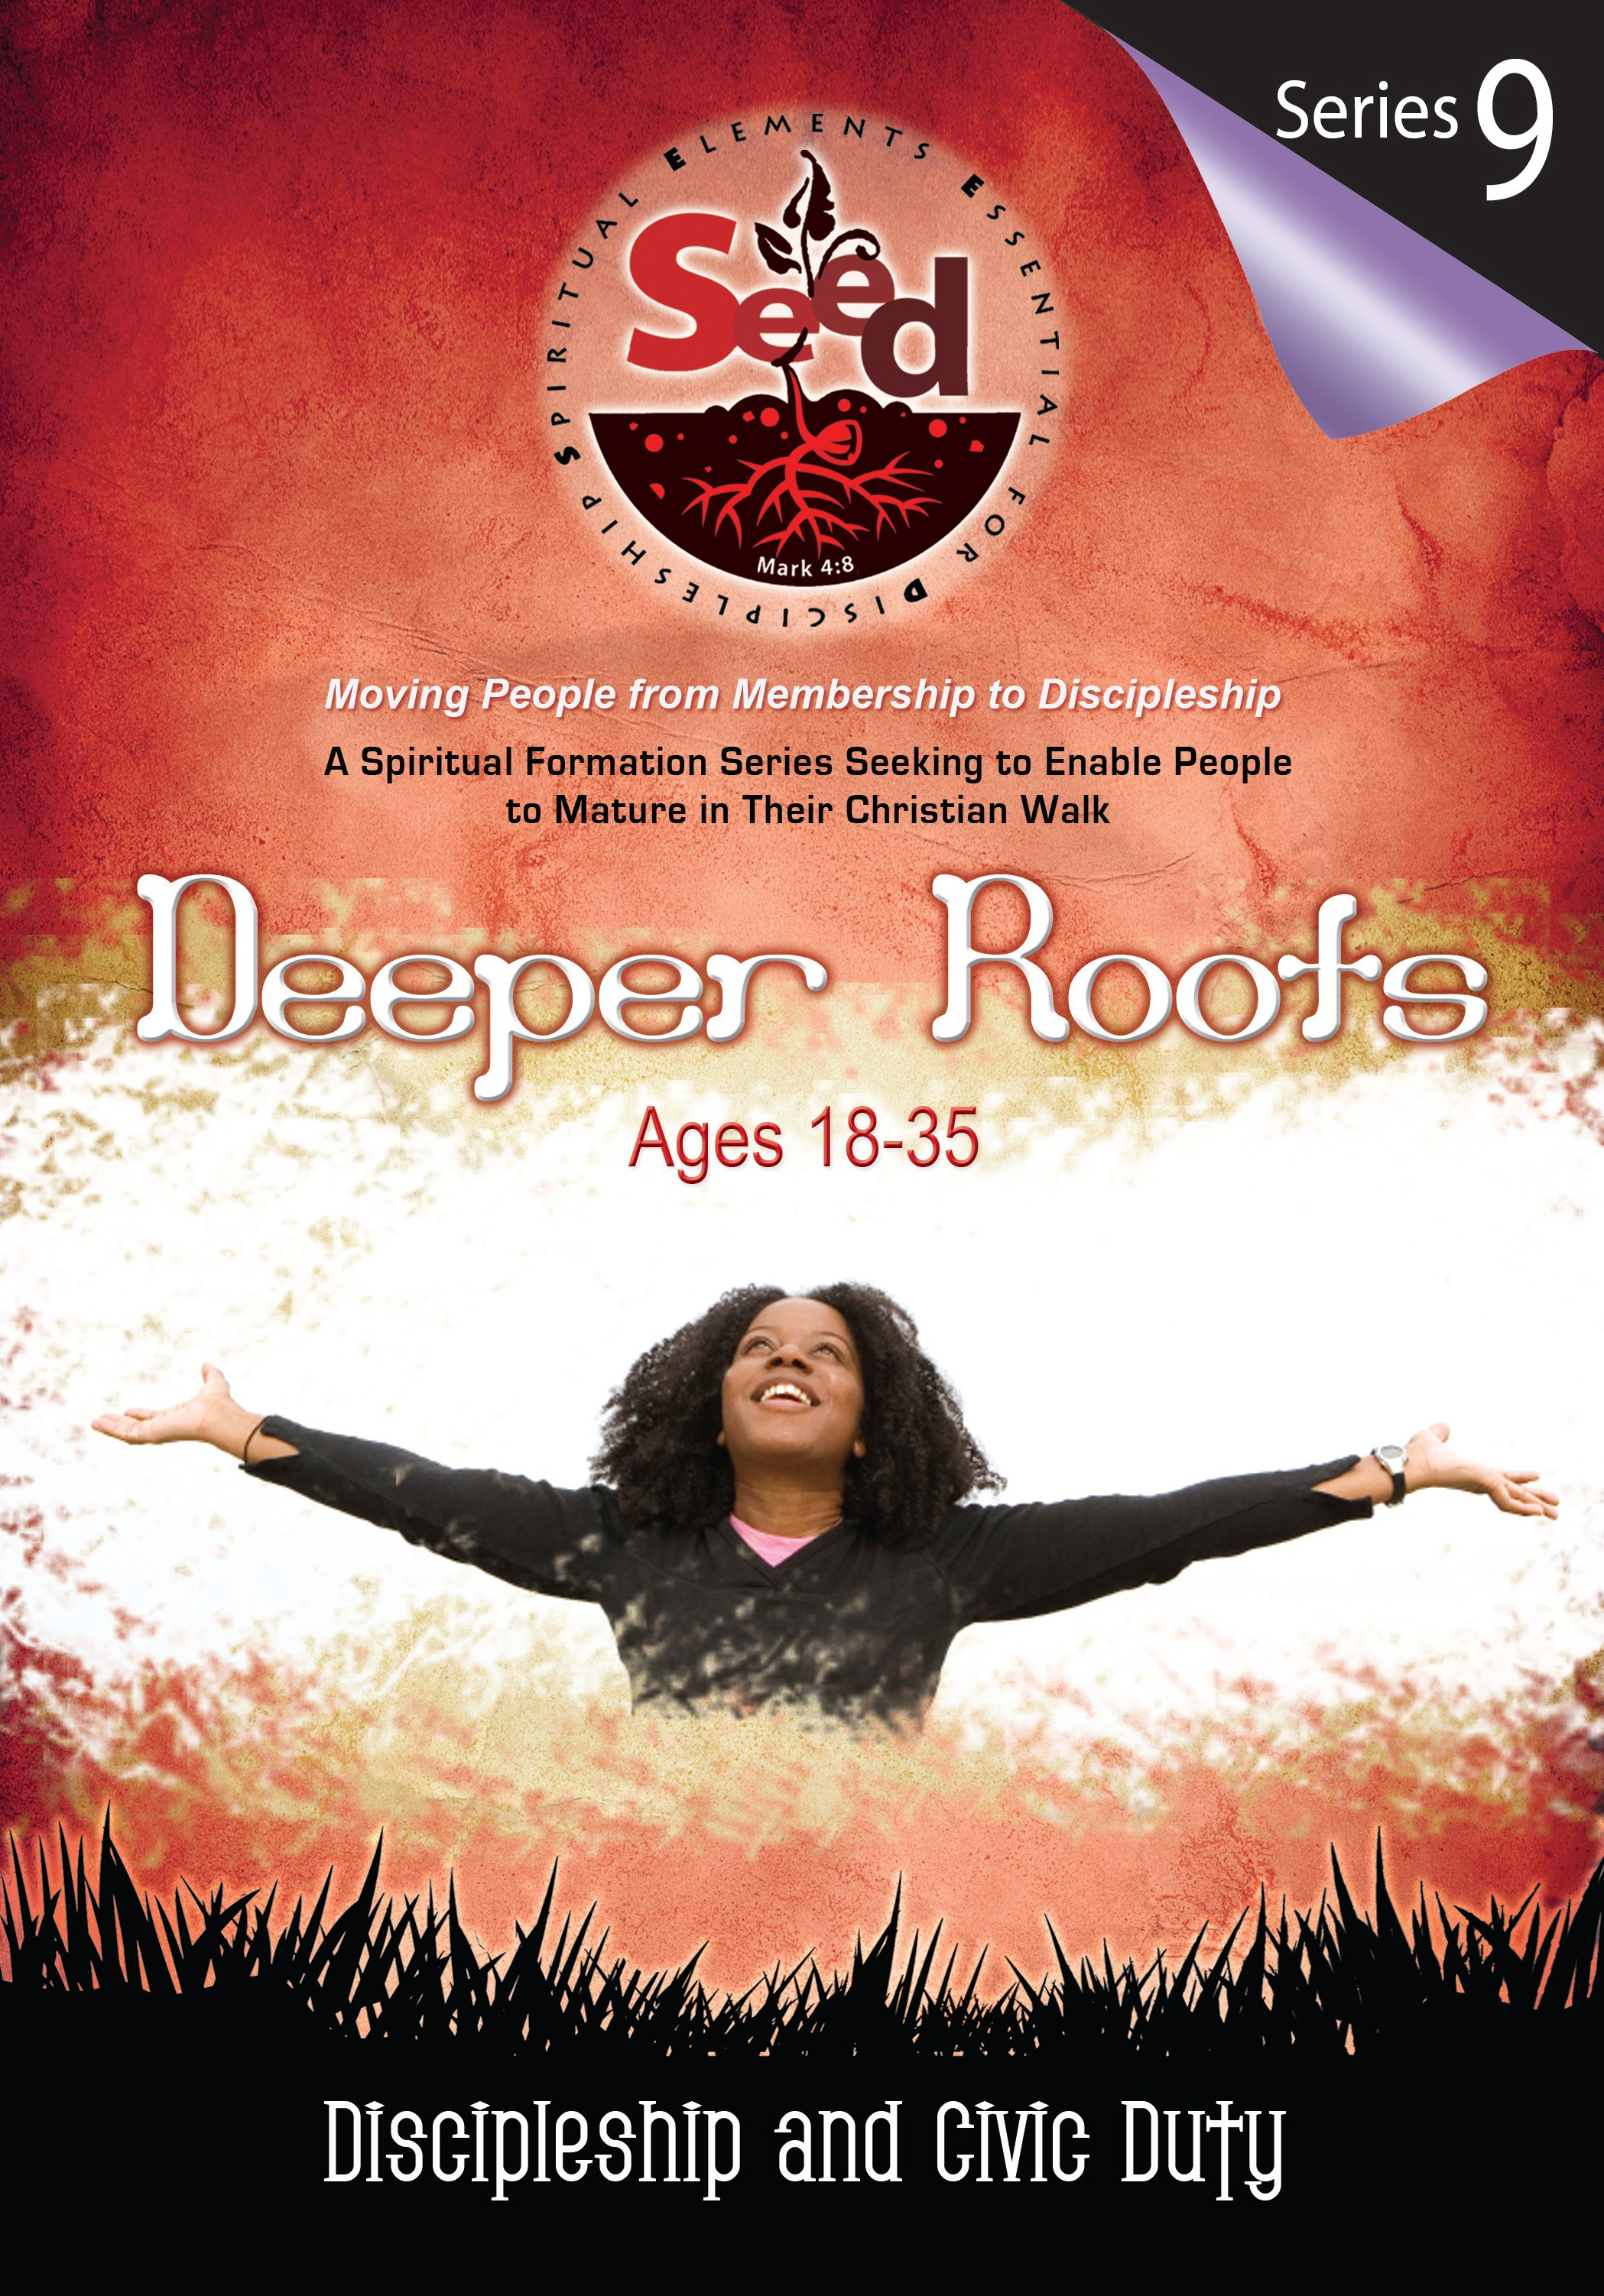 SEED Deeper Roots (Ages18-35): Series 9: Discipleship and Civic Duty